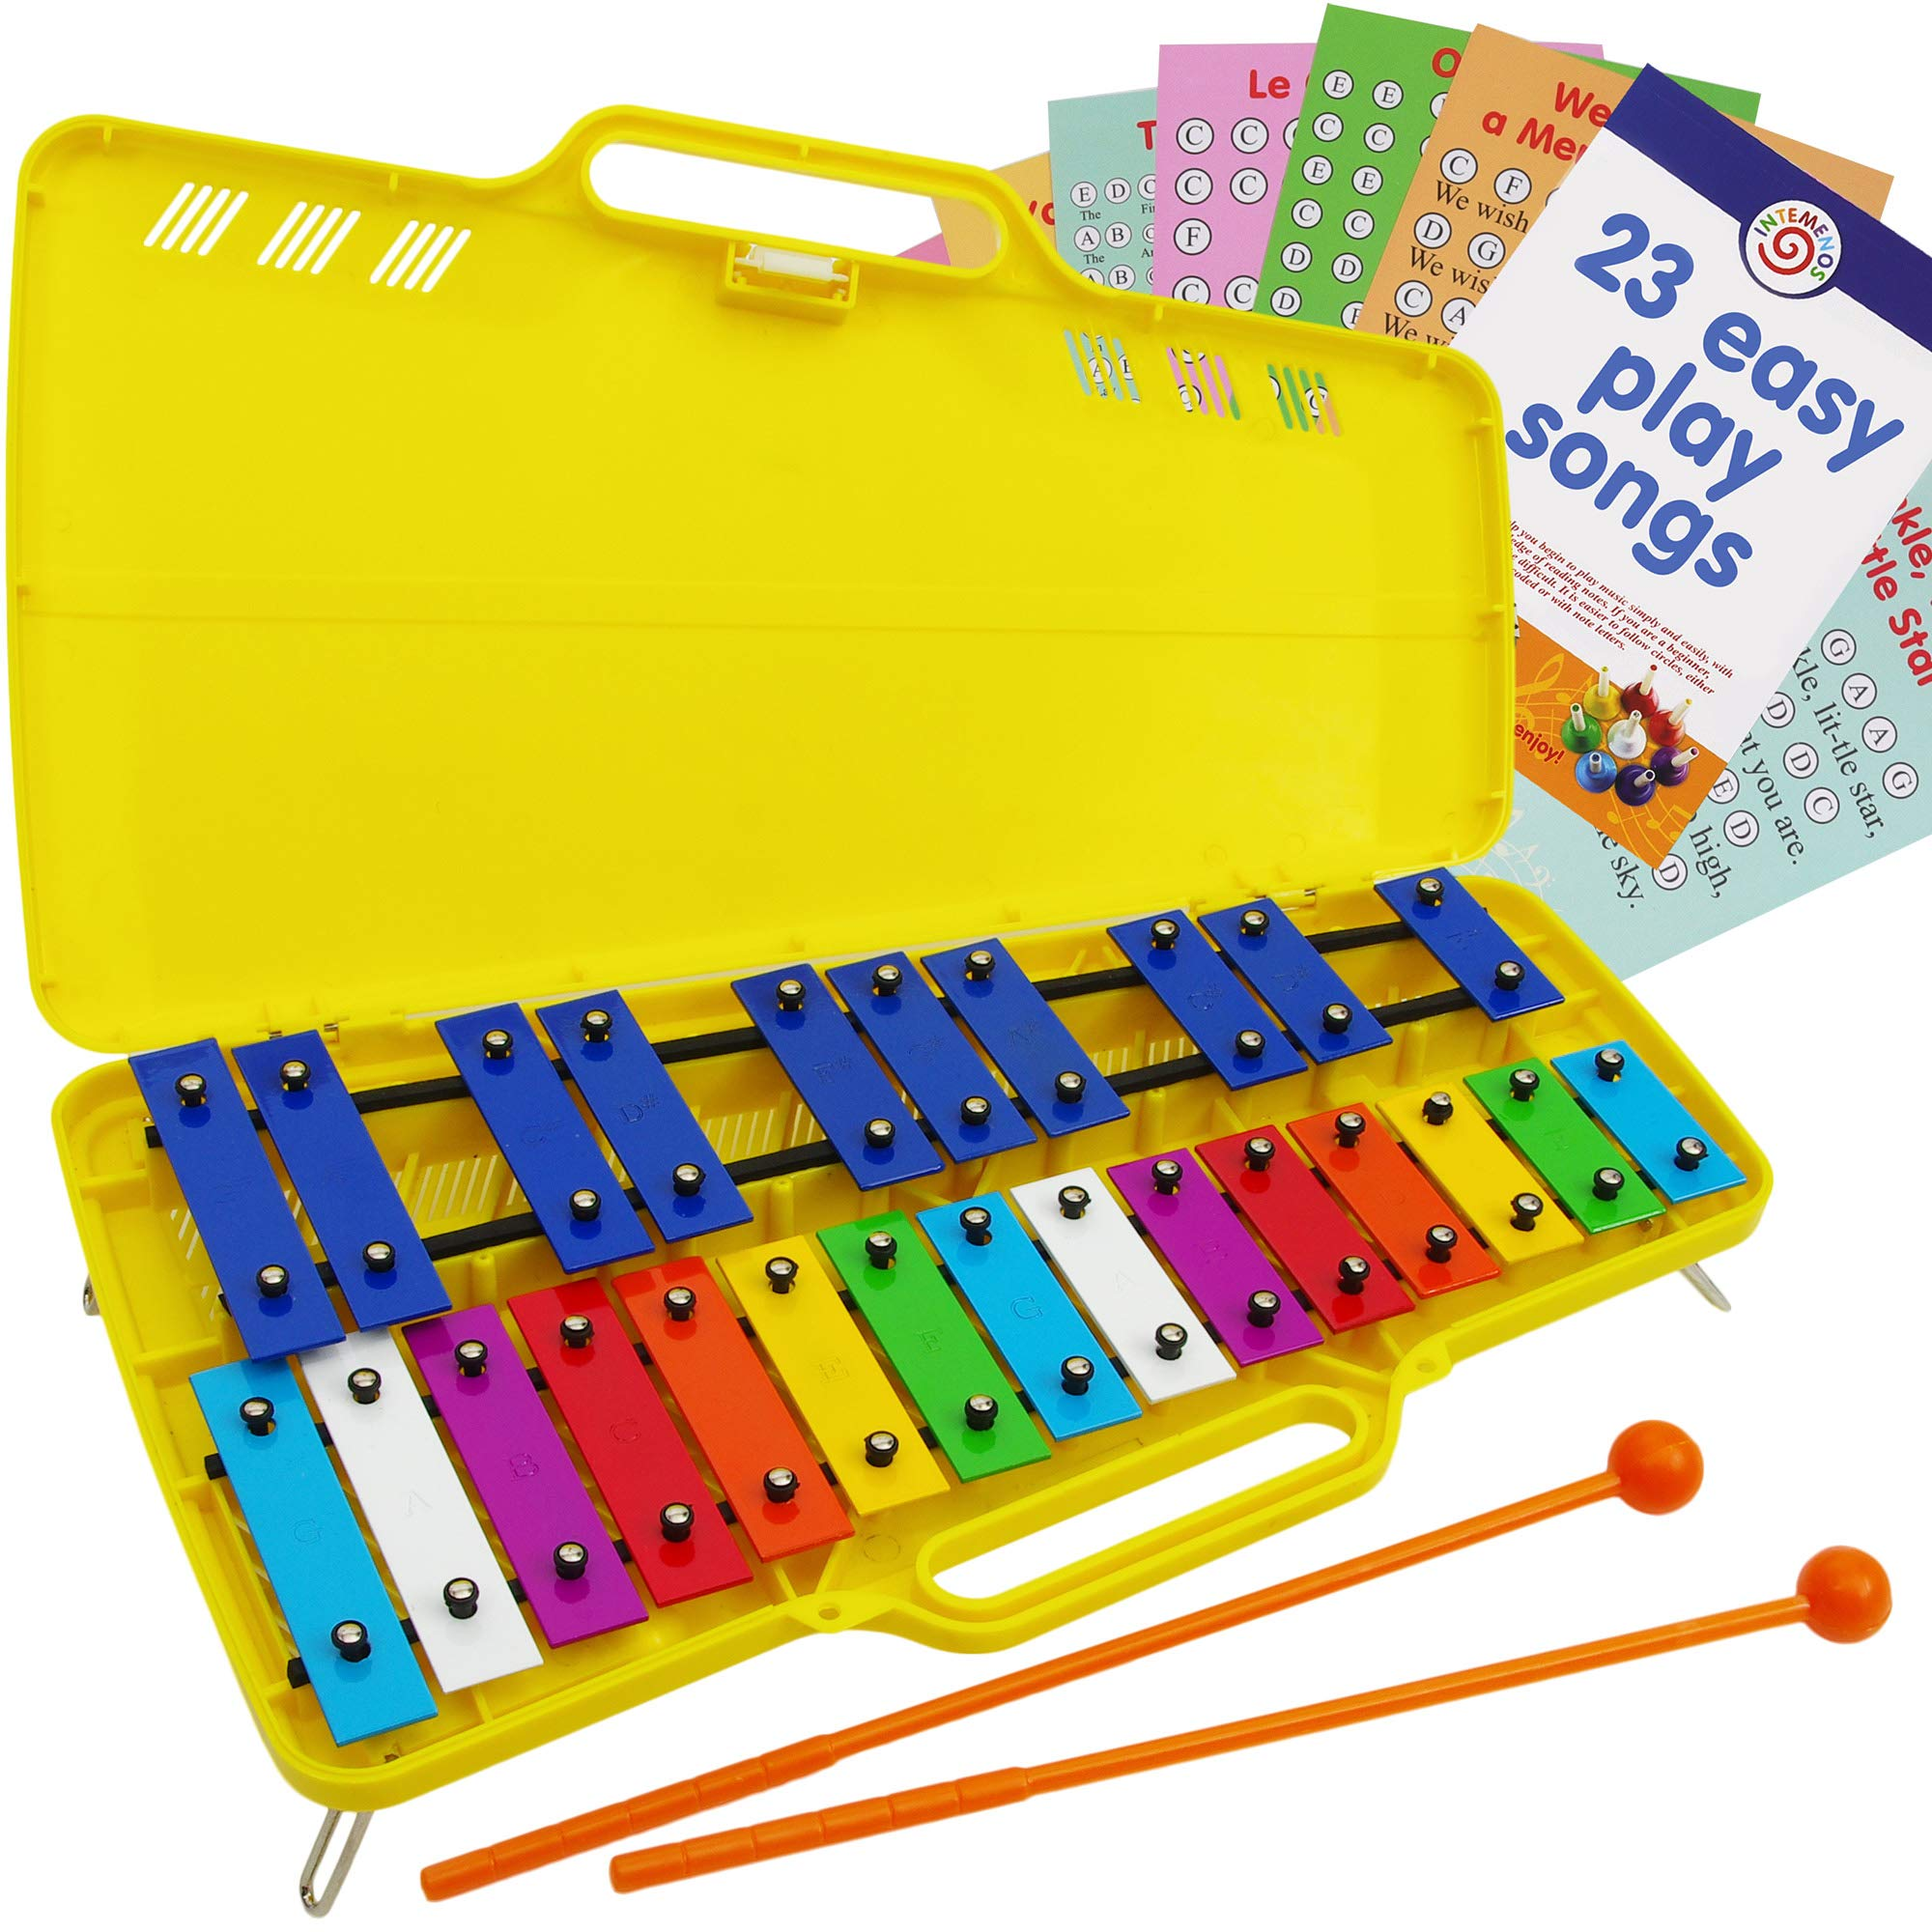 Glockenspiel 25 Notes - Metall Xylophone Chromatic - Easy Music Cards with 23 Songs by inTemenos